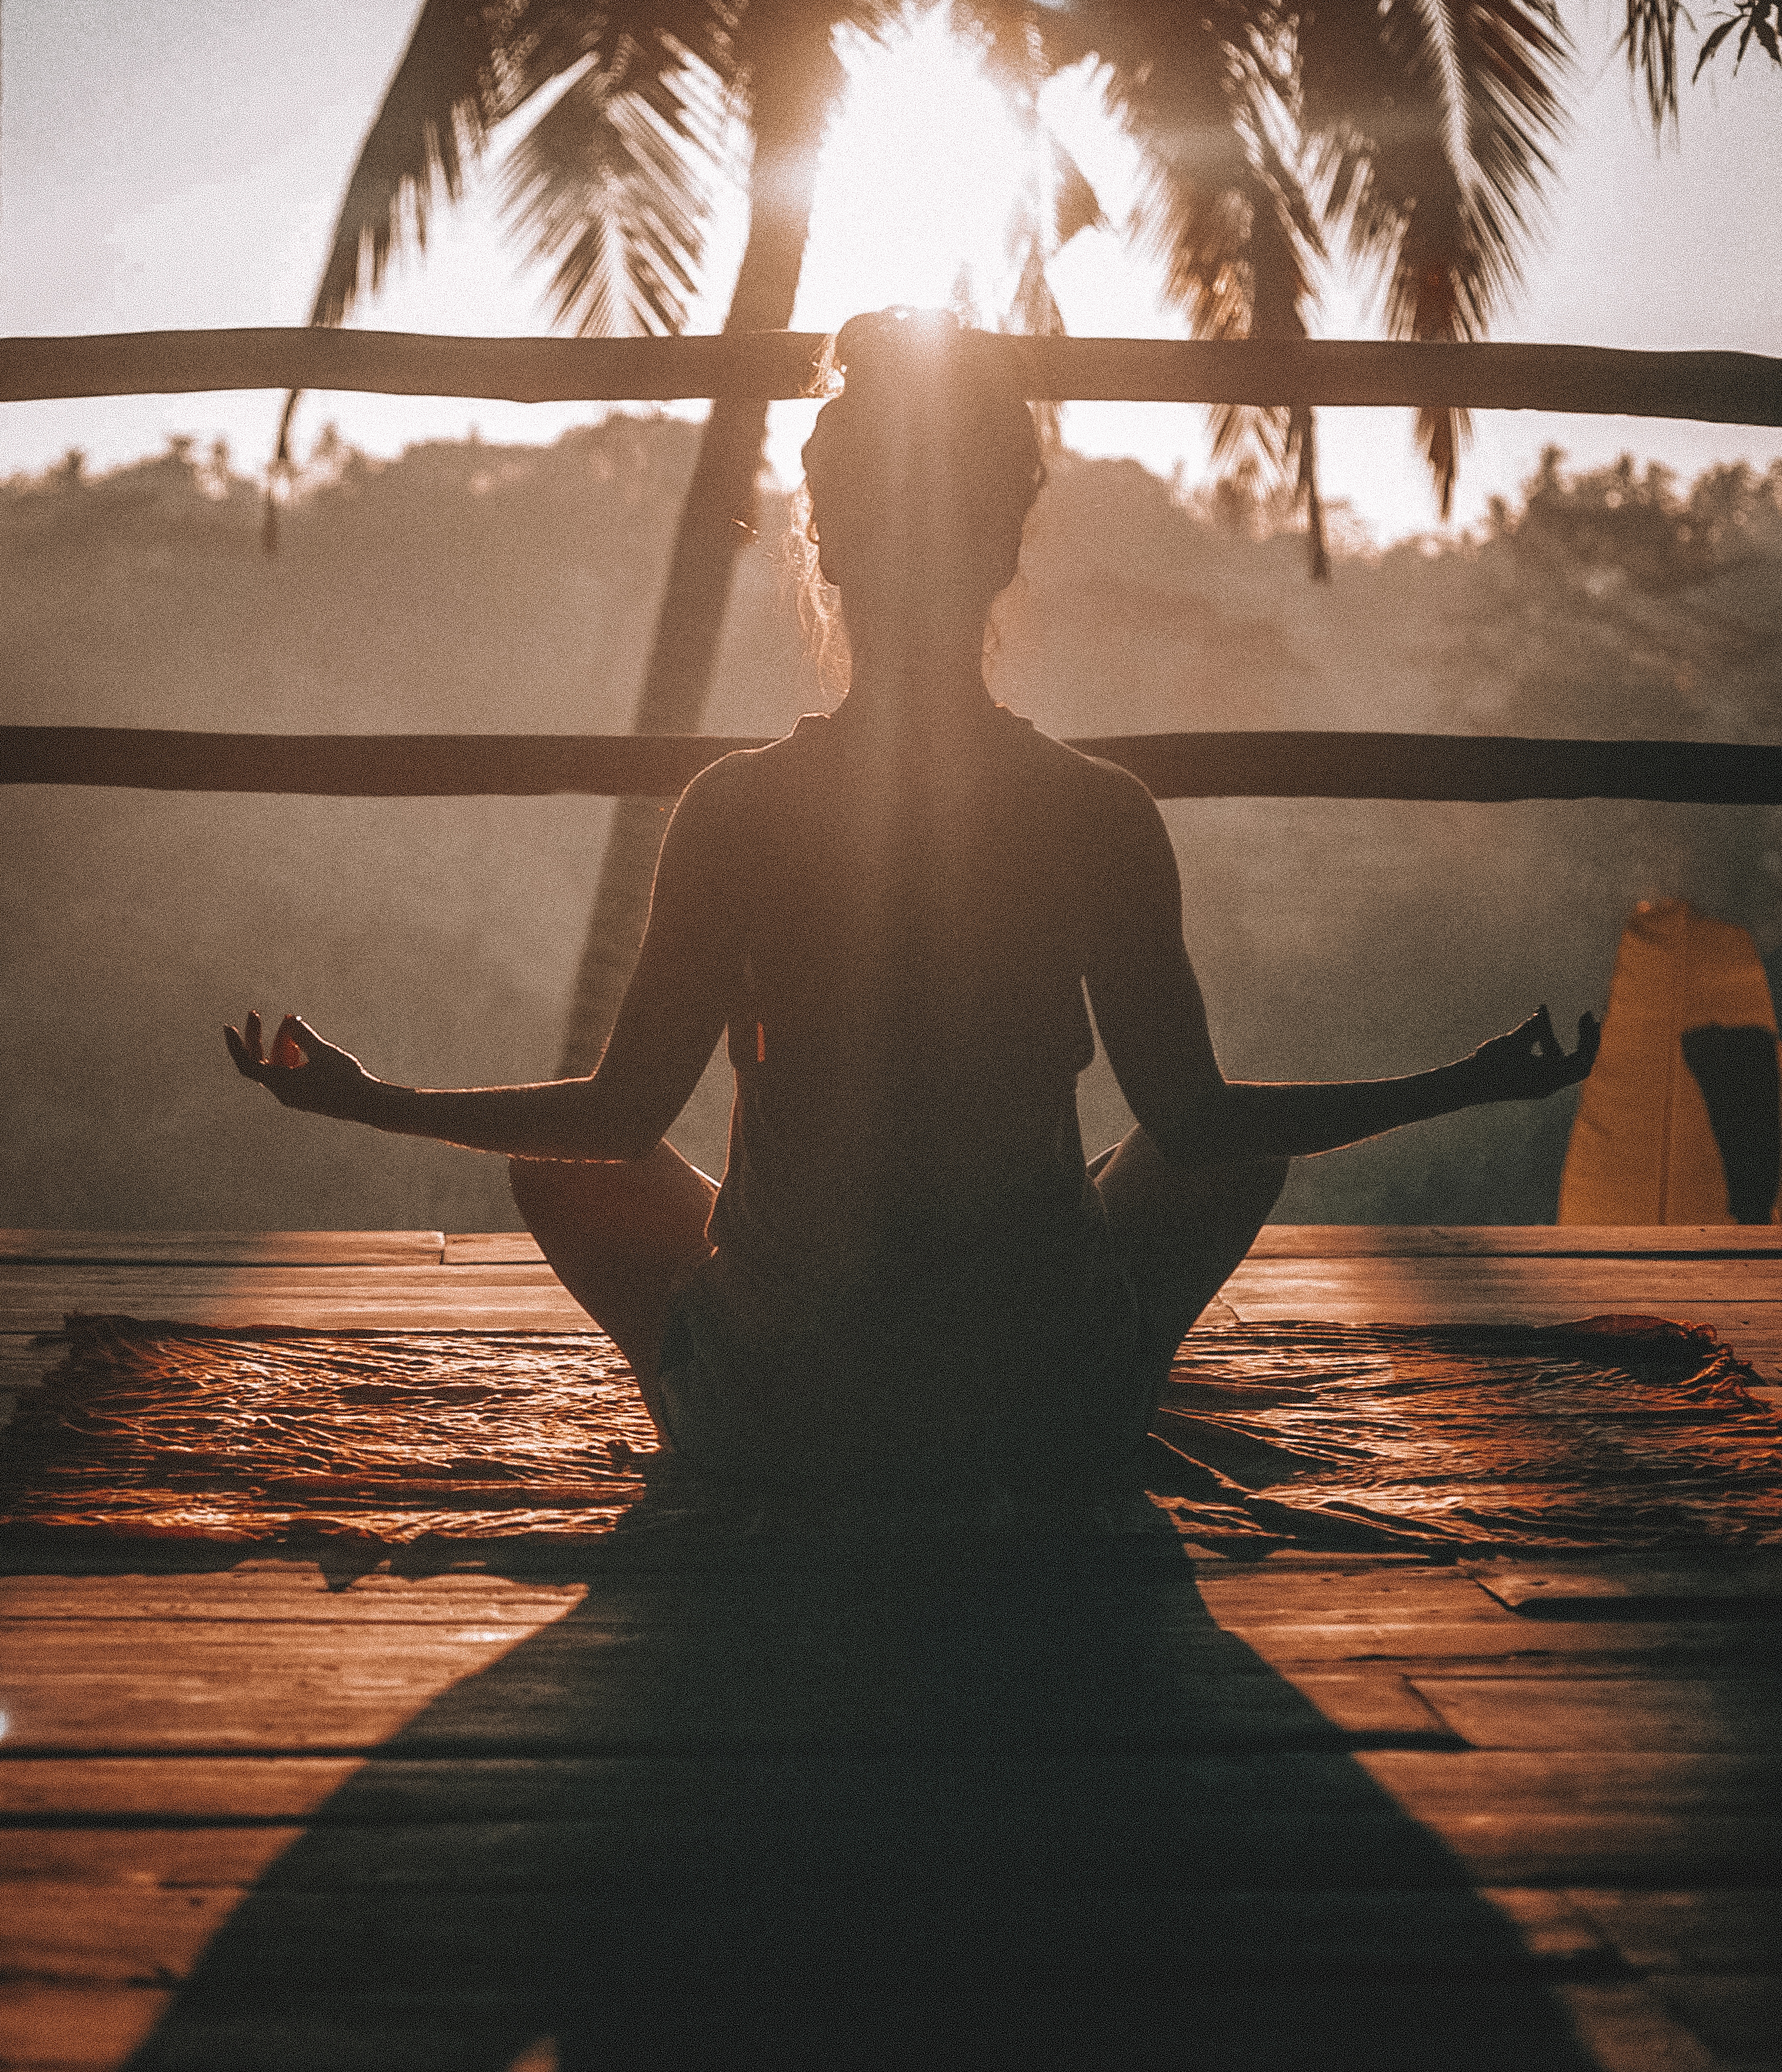 Www Alone Girl Wallpapers Com 20 Yoga Pictures Download Free Images On Unsplash